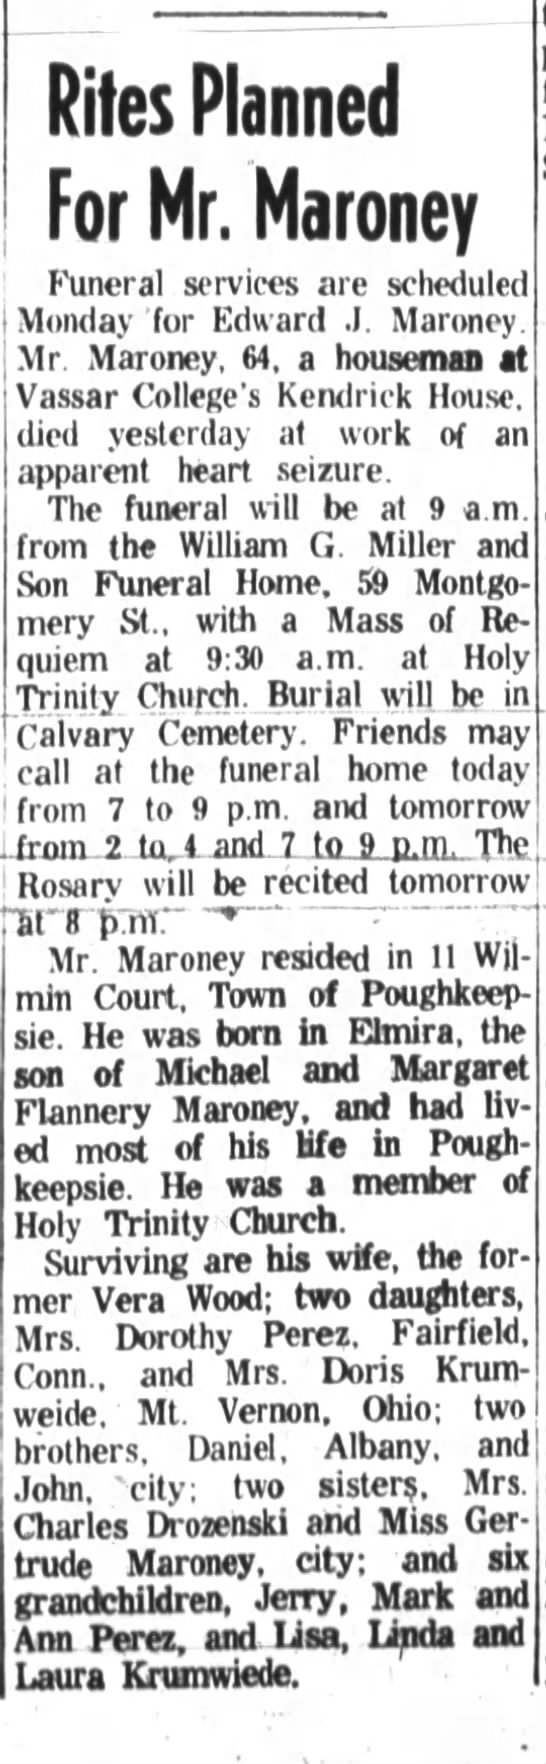 Edward J. Maroney -